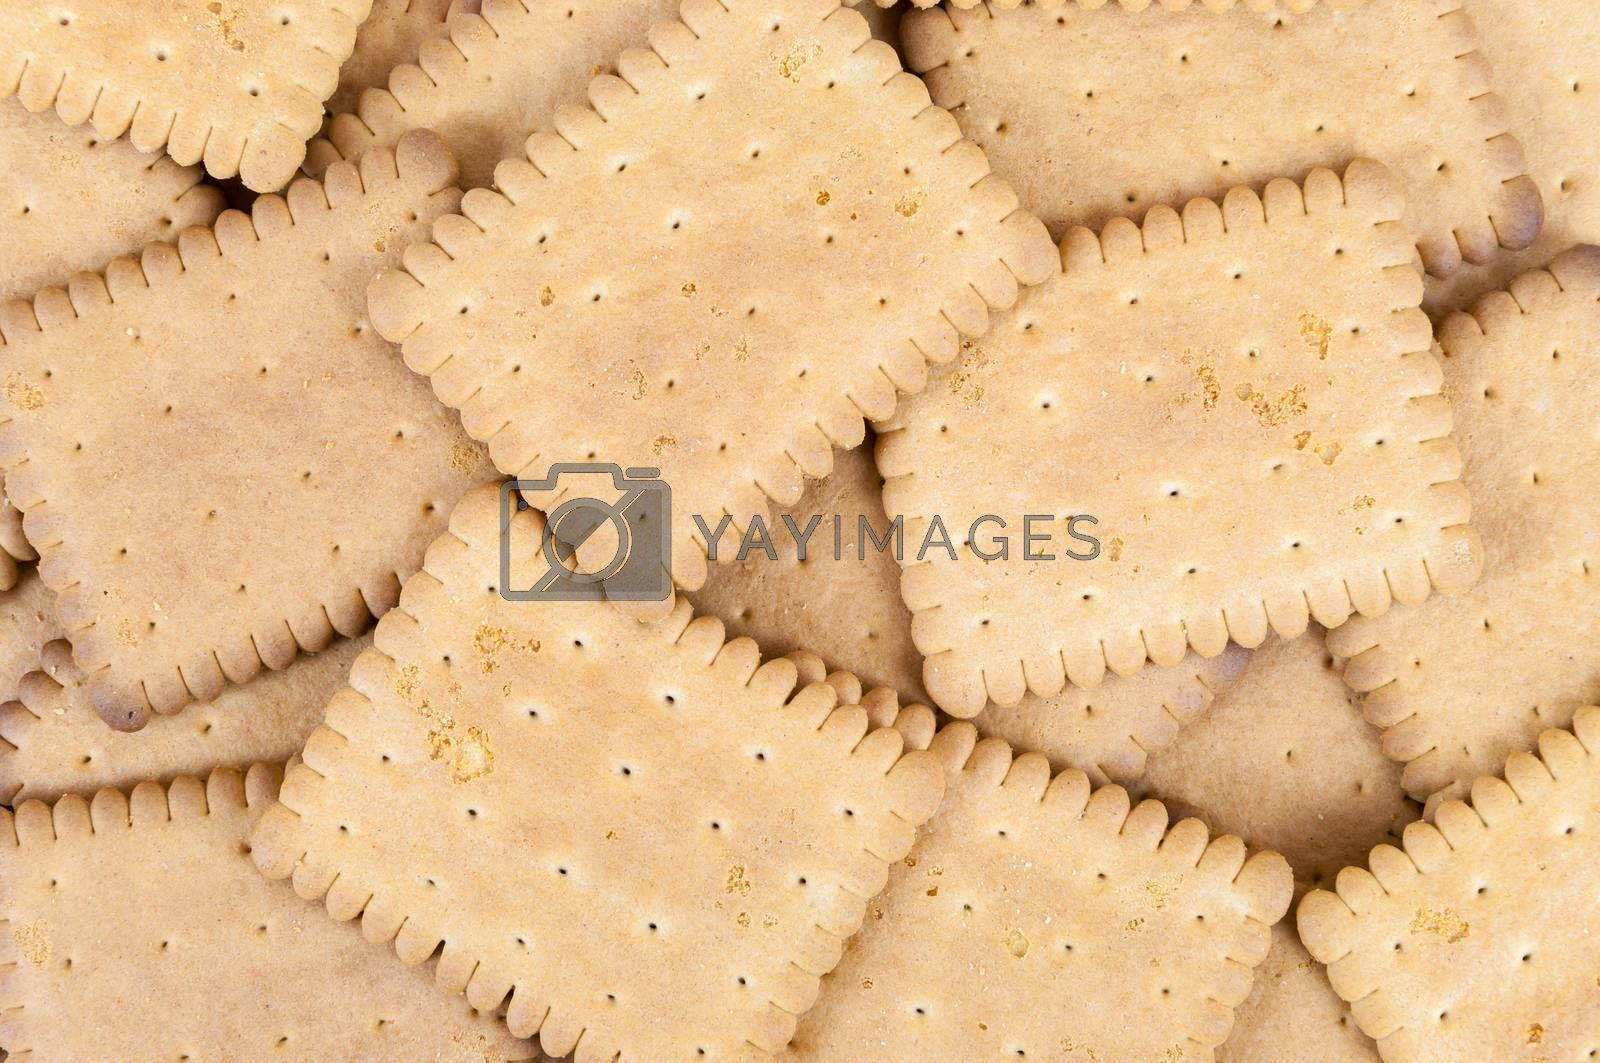 Biscuits background by mkos83